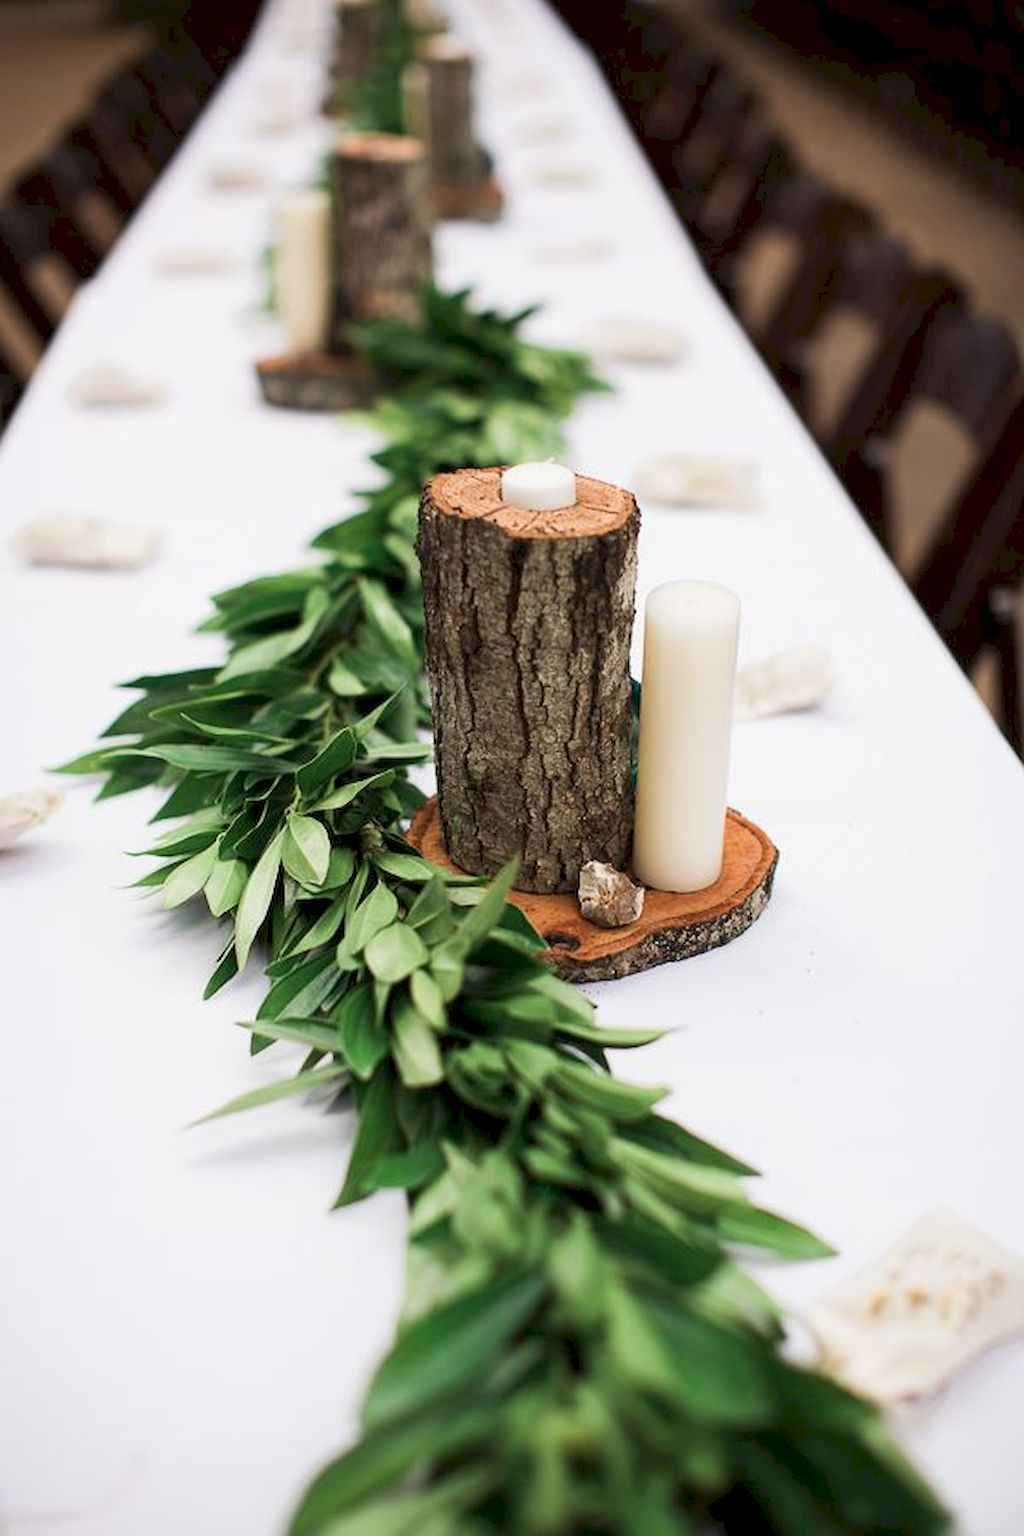 Green table centerpiece long table with tree log candle holders and branches white table cloth